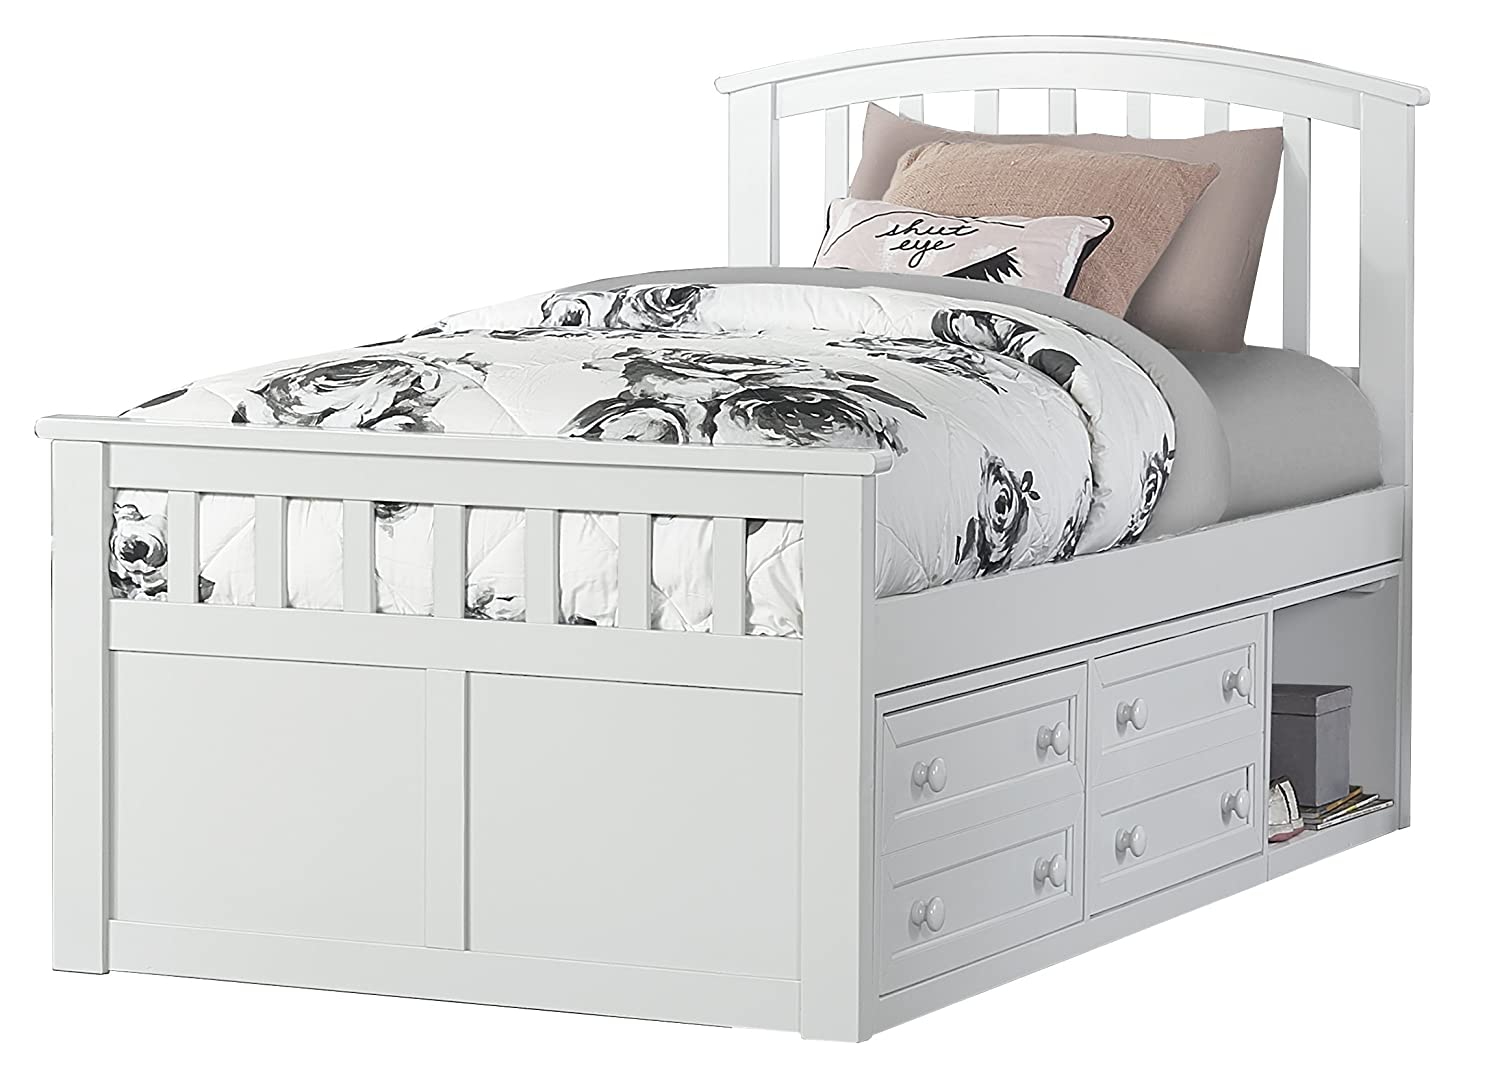 Hillsdale Furniture Hillsdale Charlie Captains Bed with One Storage Unit, Twin, White: Amazon.in: Home & Kitchen